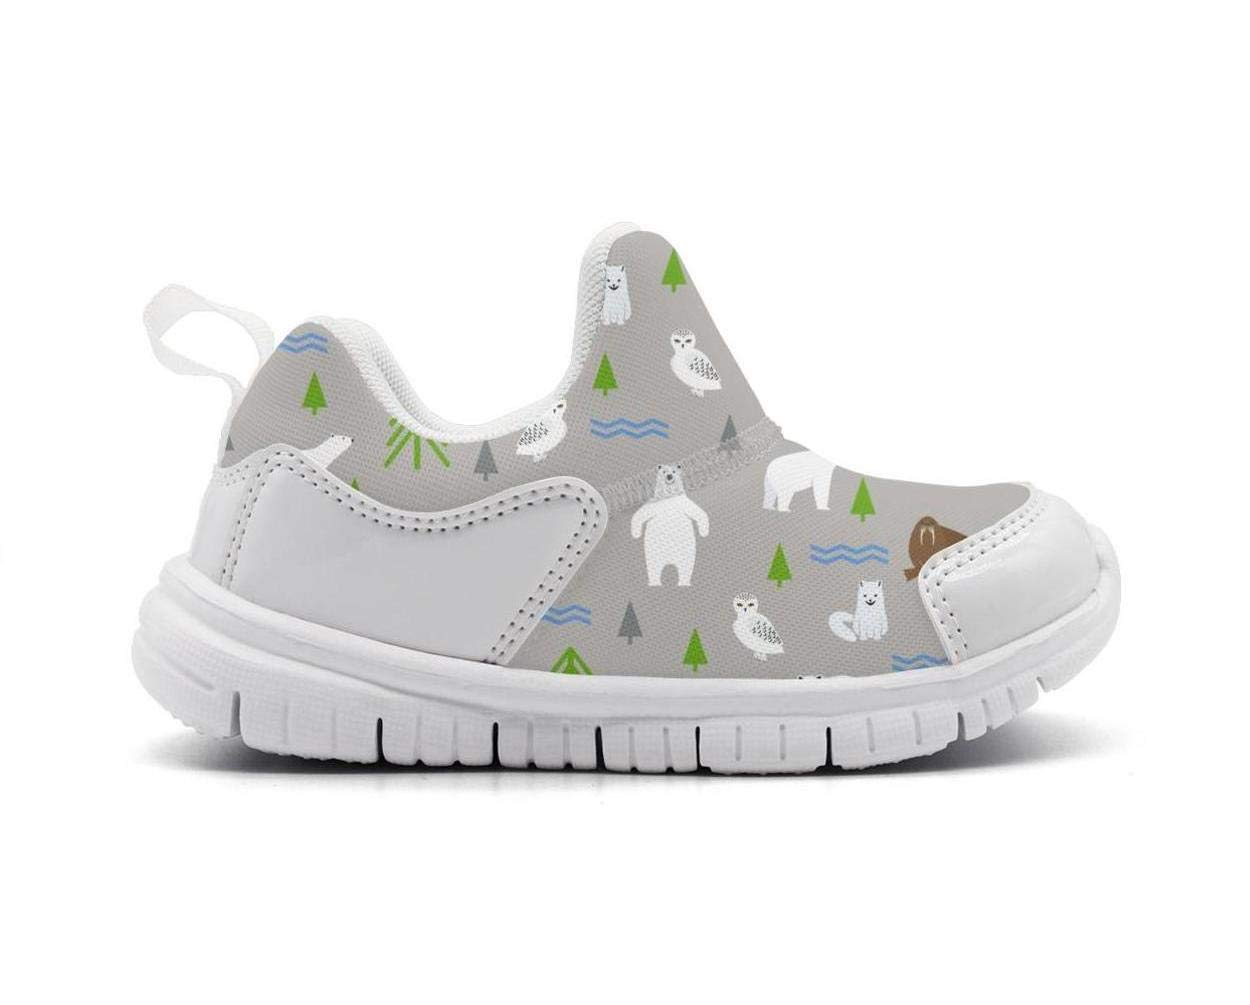 ONEYUAN Children Polar Bear and Seal Animal Gray Kid Casual Lightweight Sport Shoes Sneakers Running Shoes